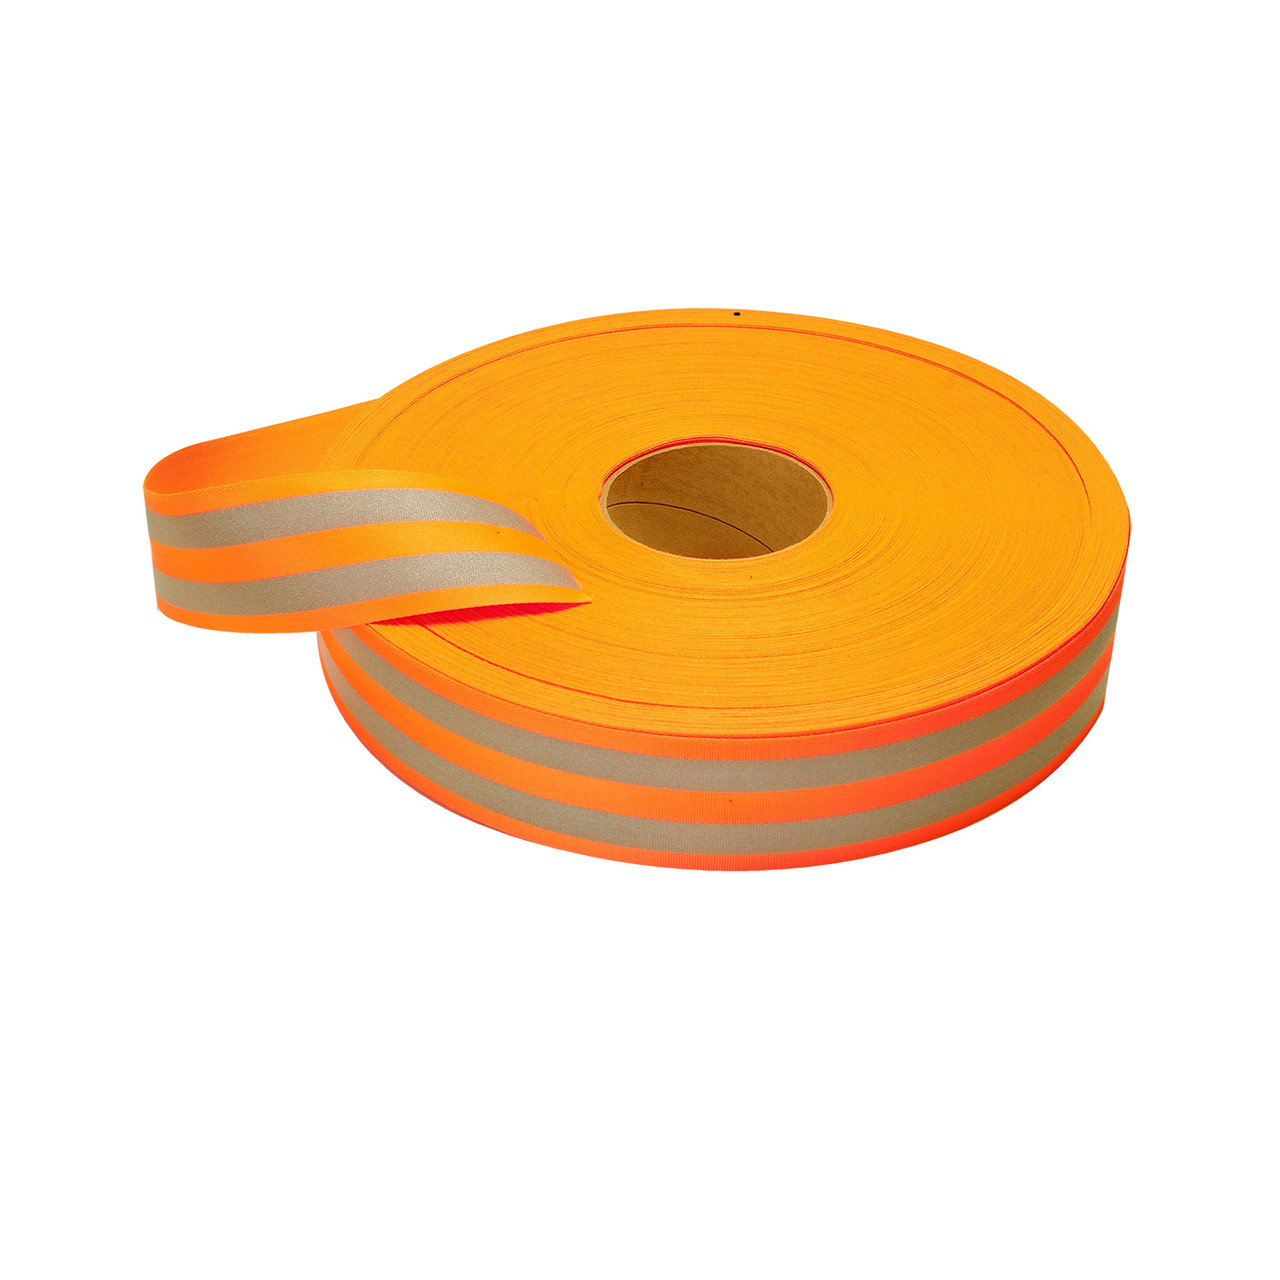 REFLECTIVE TAPE, SOLD BY THE YARD